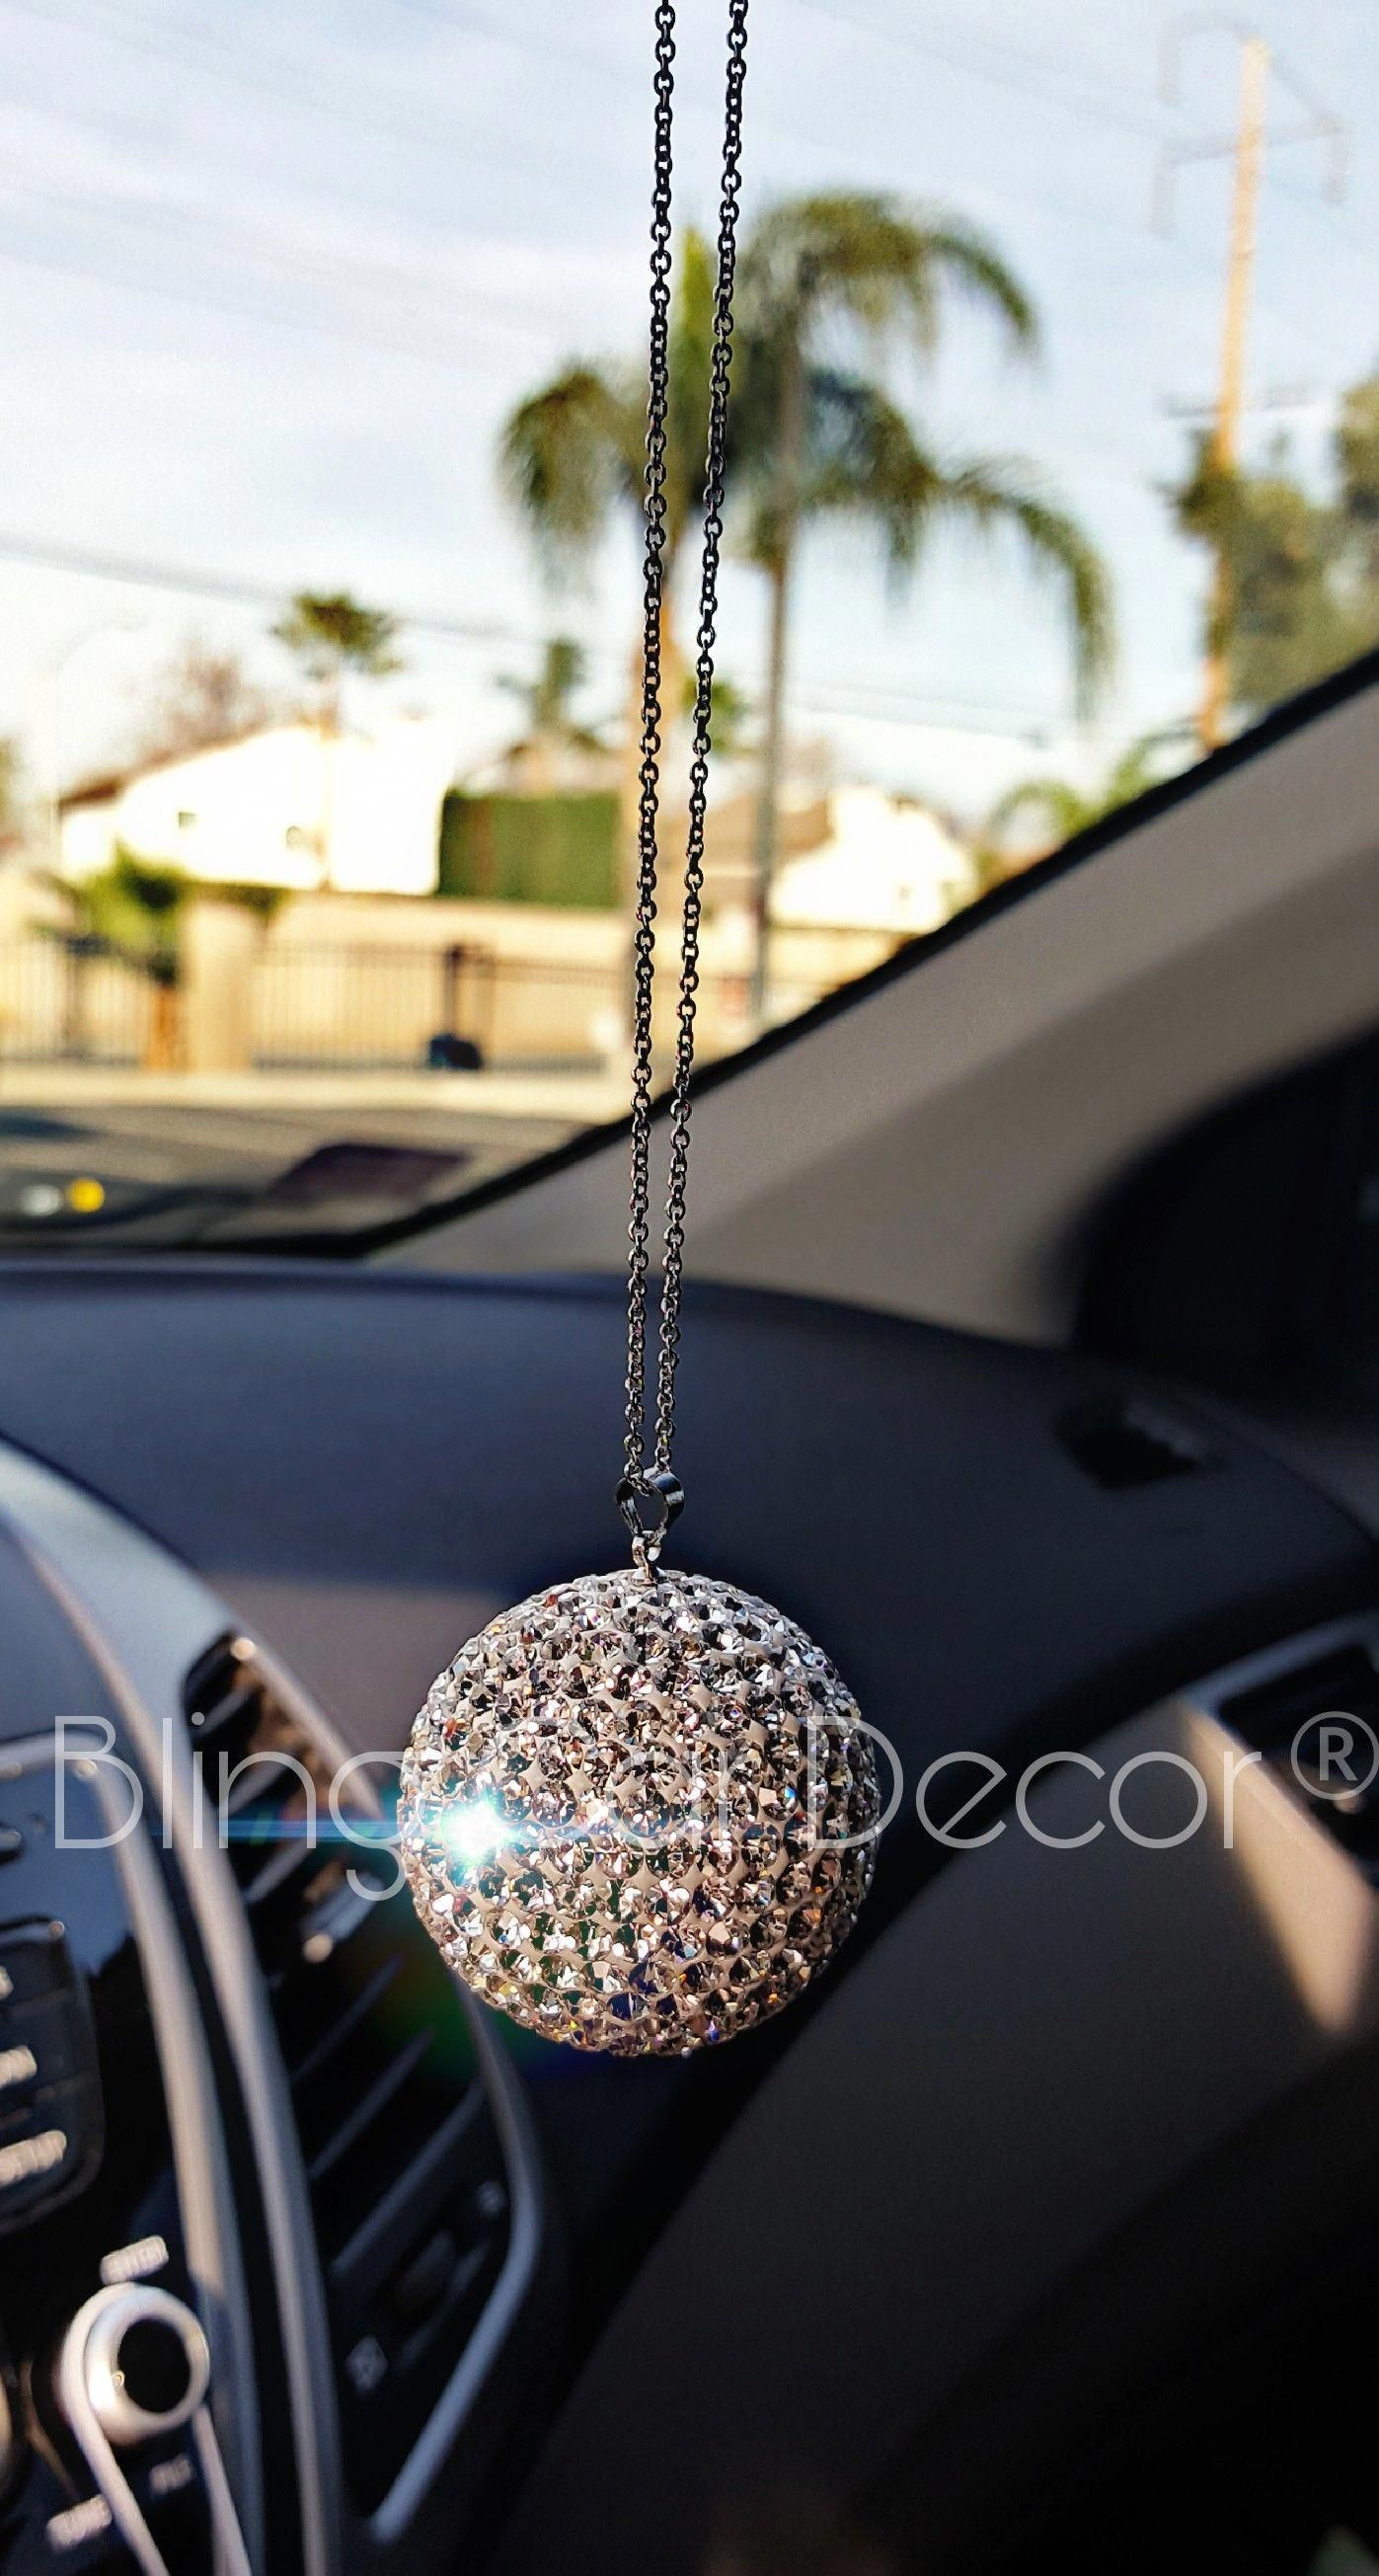 JJMY Bling Car Accessories Car Bling Decoration Crystal Ball Car Rear View Mirror Charm Bling Decor Crystal Rhinestone Car Bling Interior Accessories Silver Ball Ornaments Bling Hanging Charm